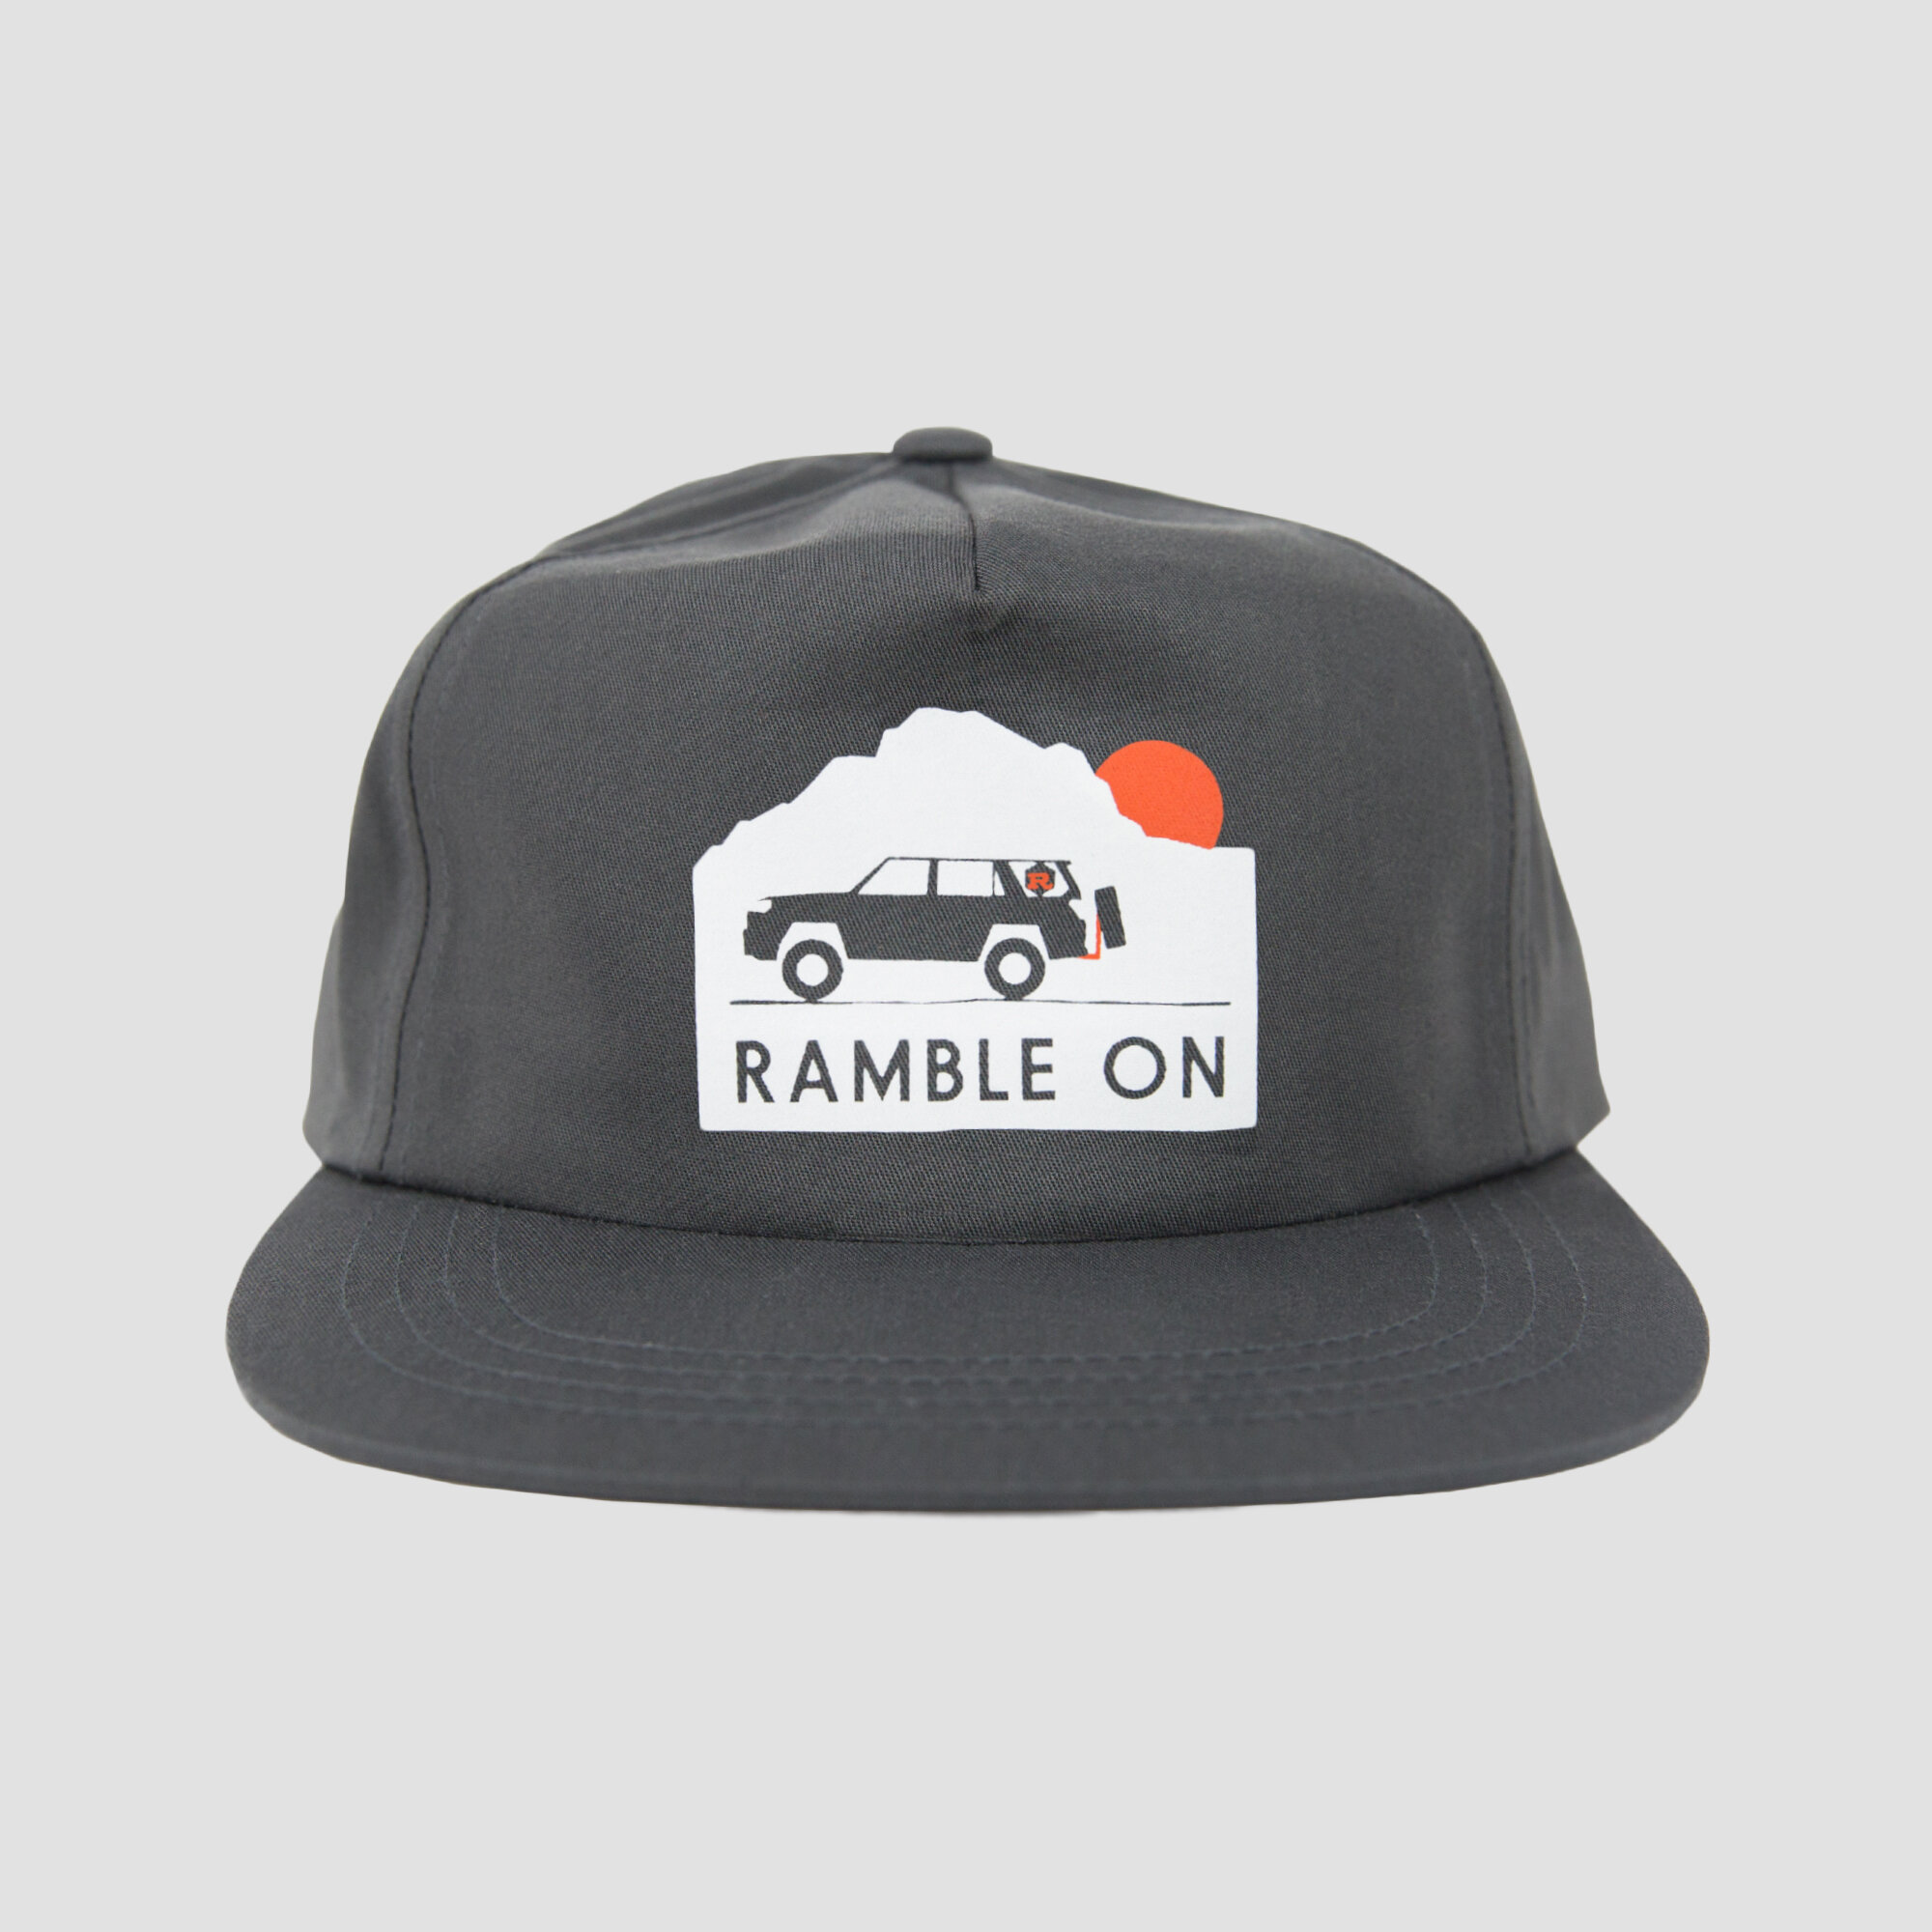 Ramblin' - Charcoal - $22.95